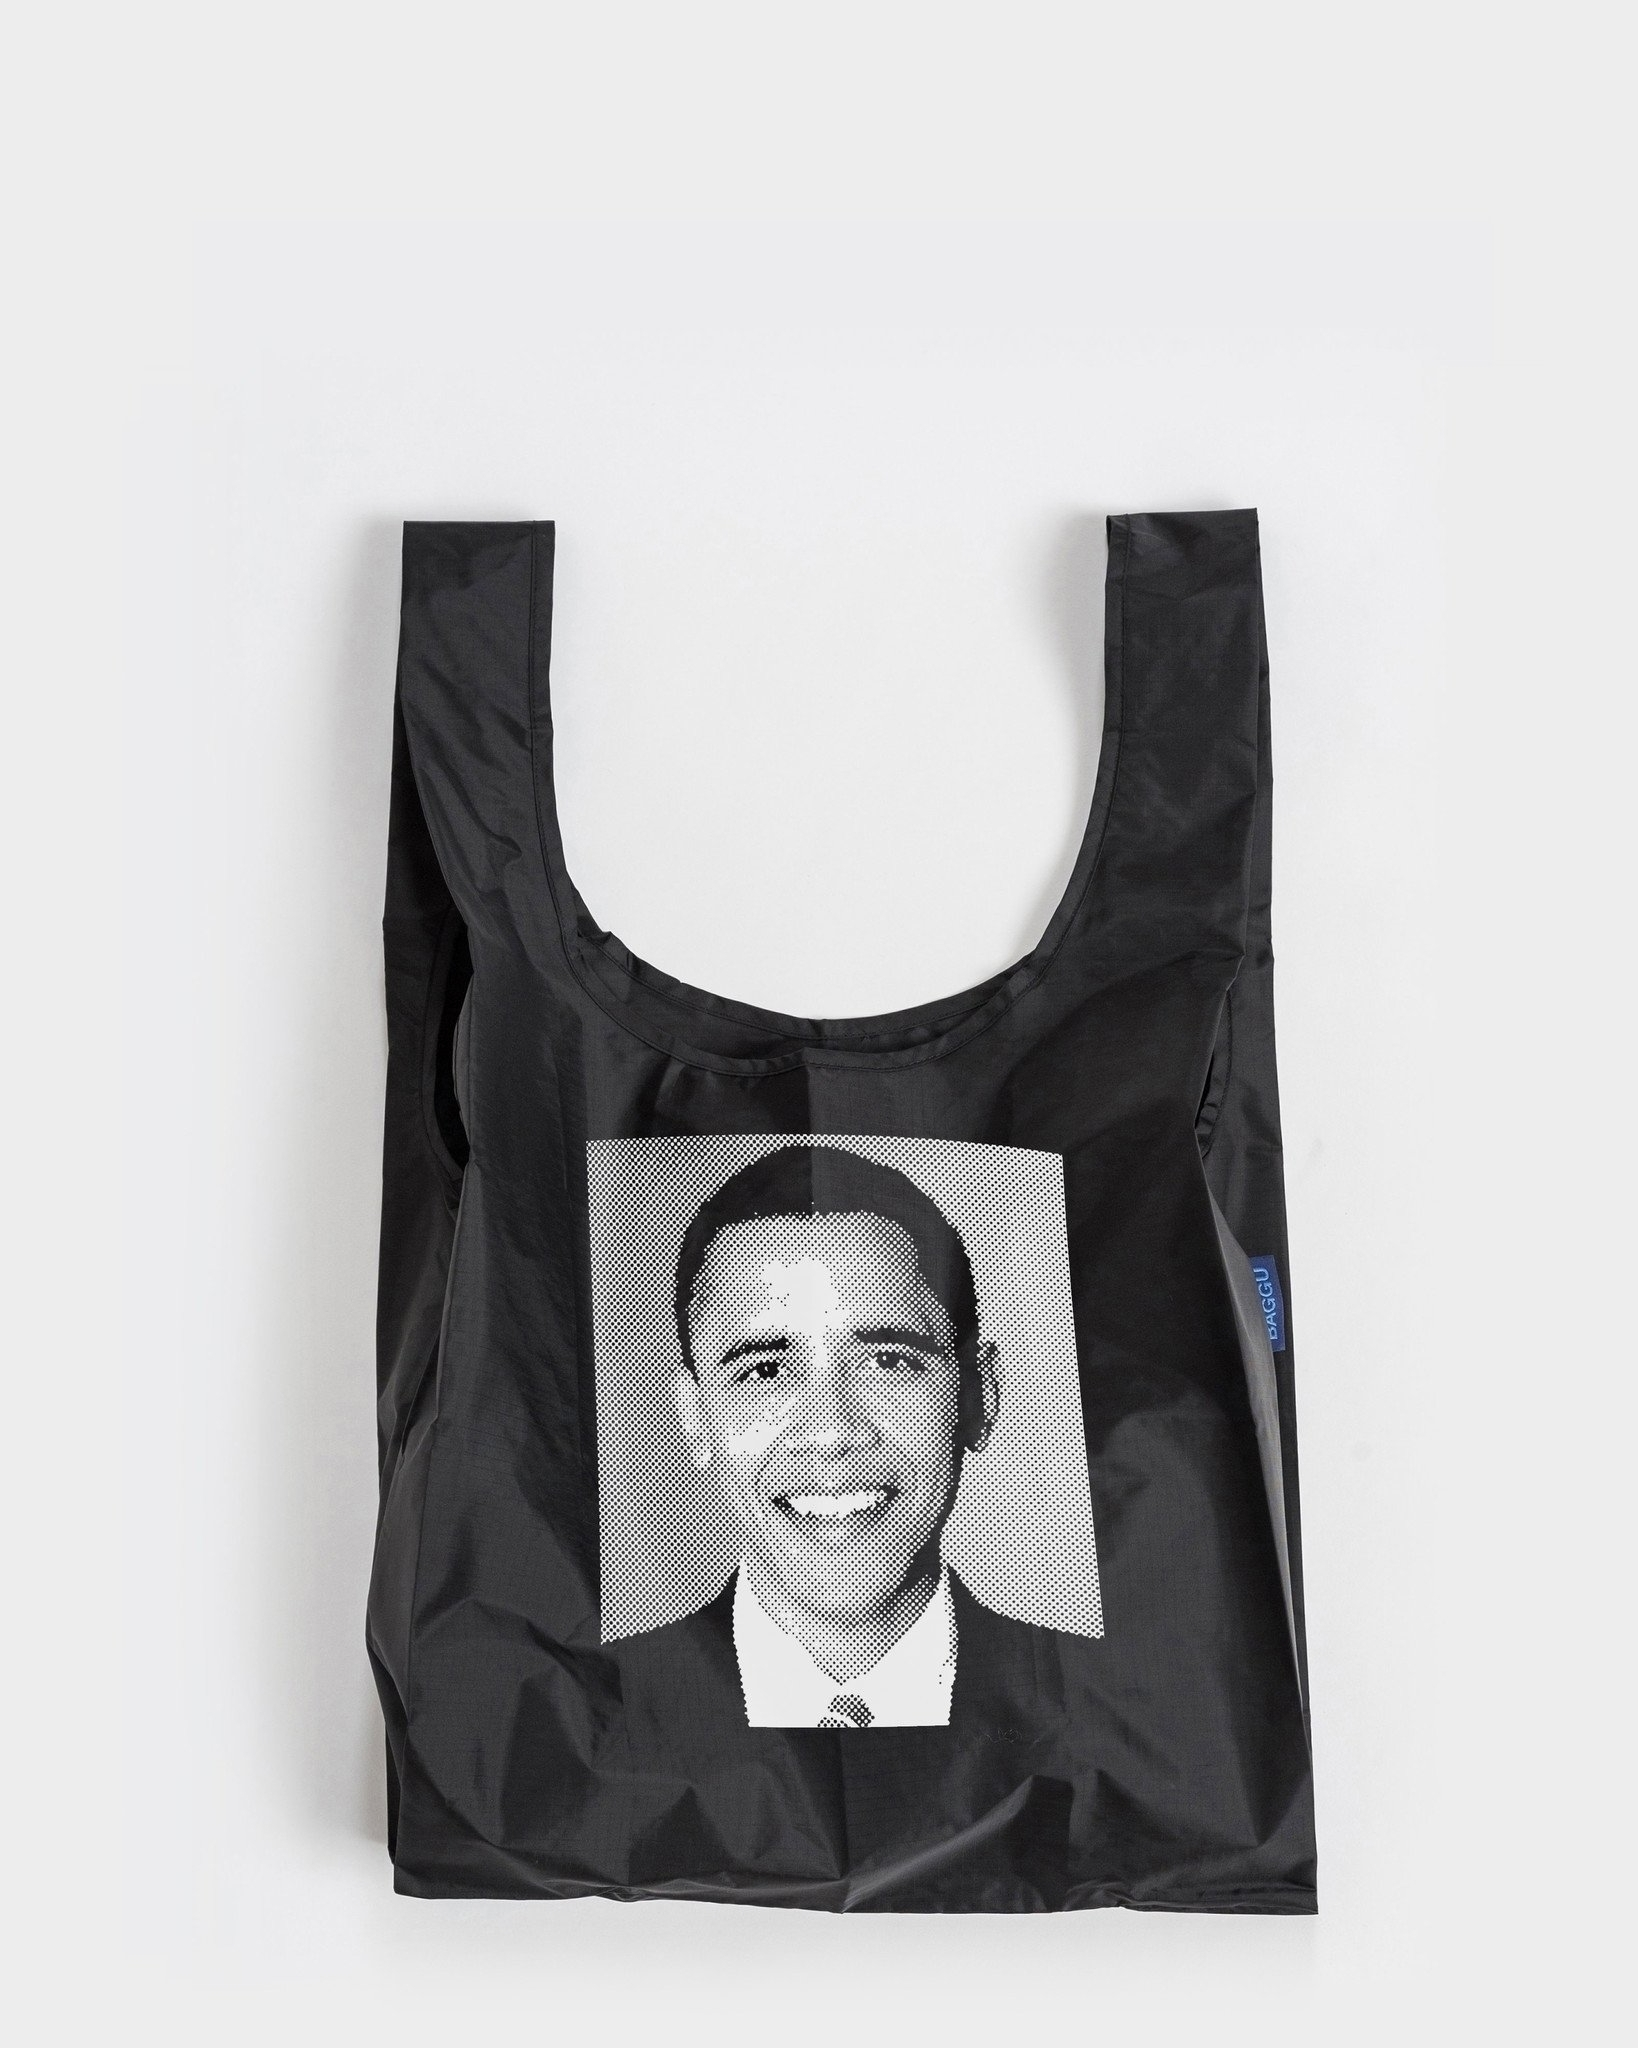 Just ordered wait For bag SOLD, - lawnparty | ello